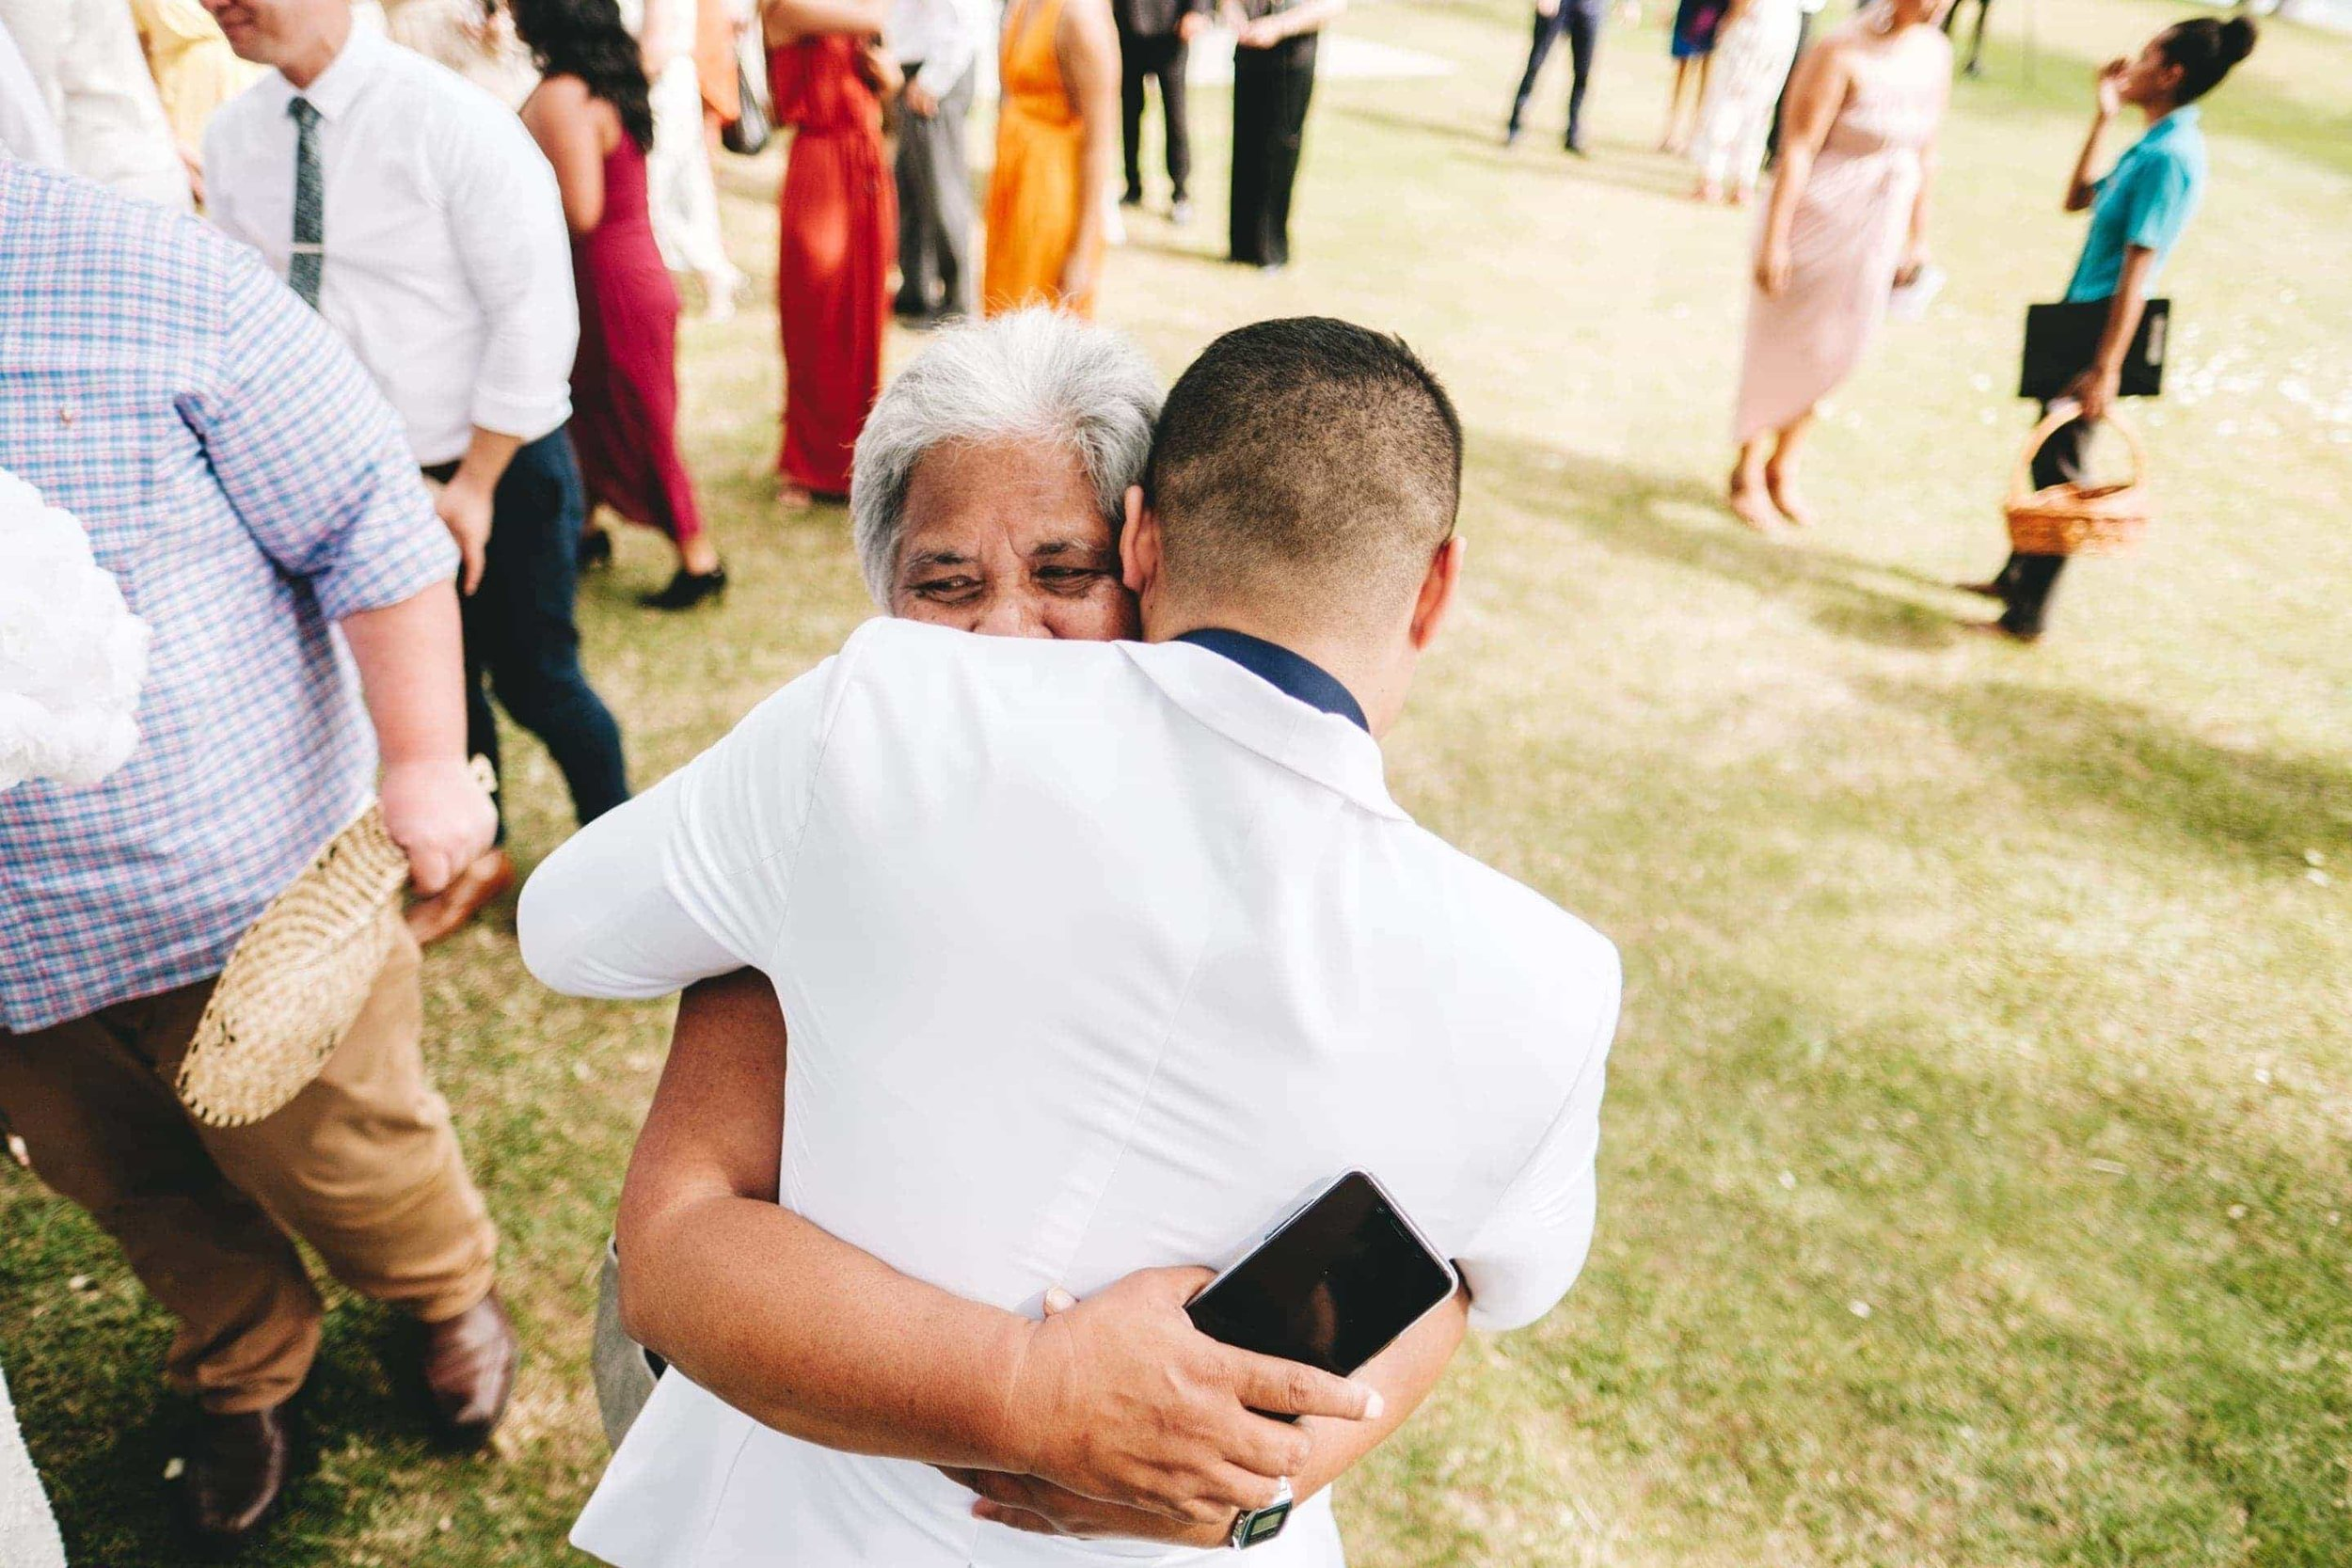 the groom embracing his grandmother after the ceremony